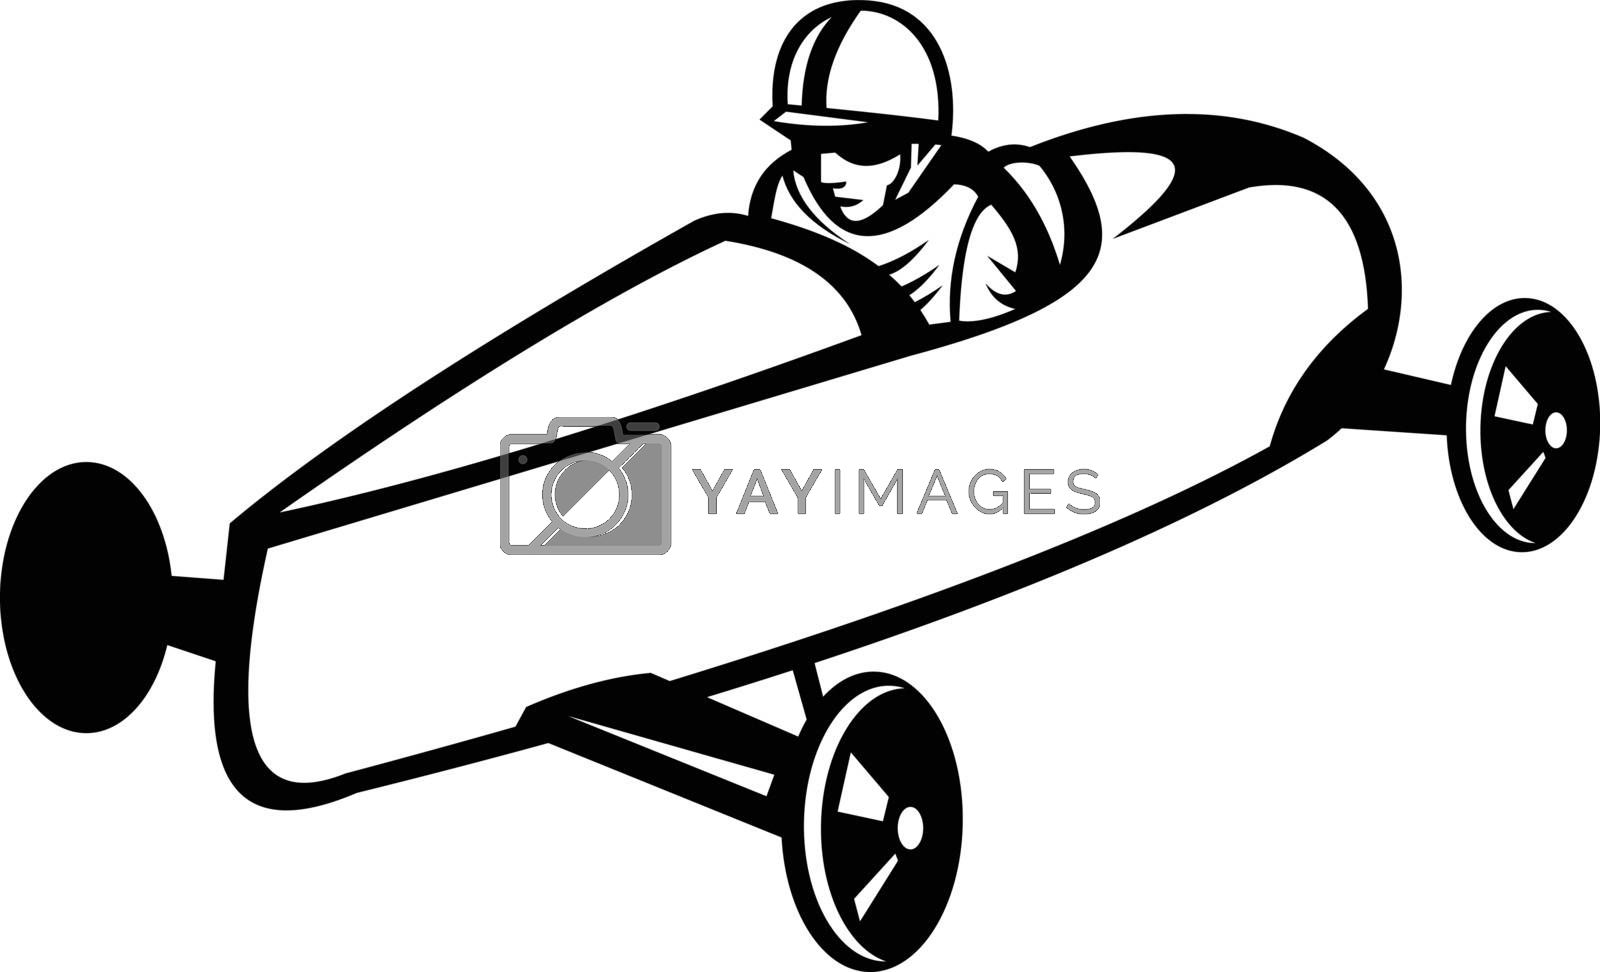 Retro black and white style illustration of a soap box derby or soapbox car racer racing in competition viewed from side on high angle on isolated white background.